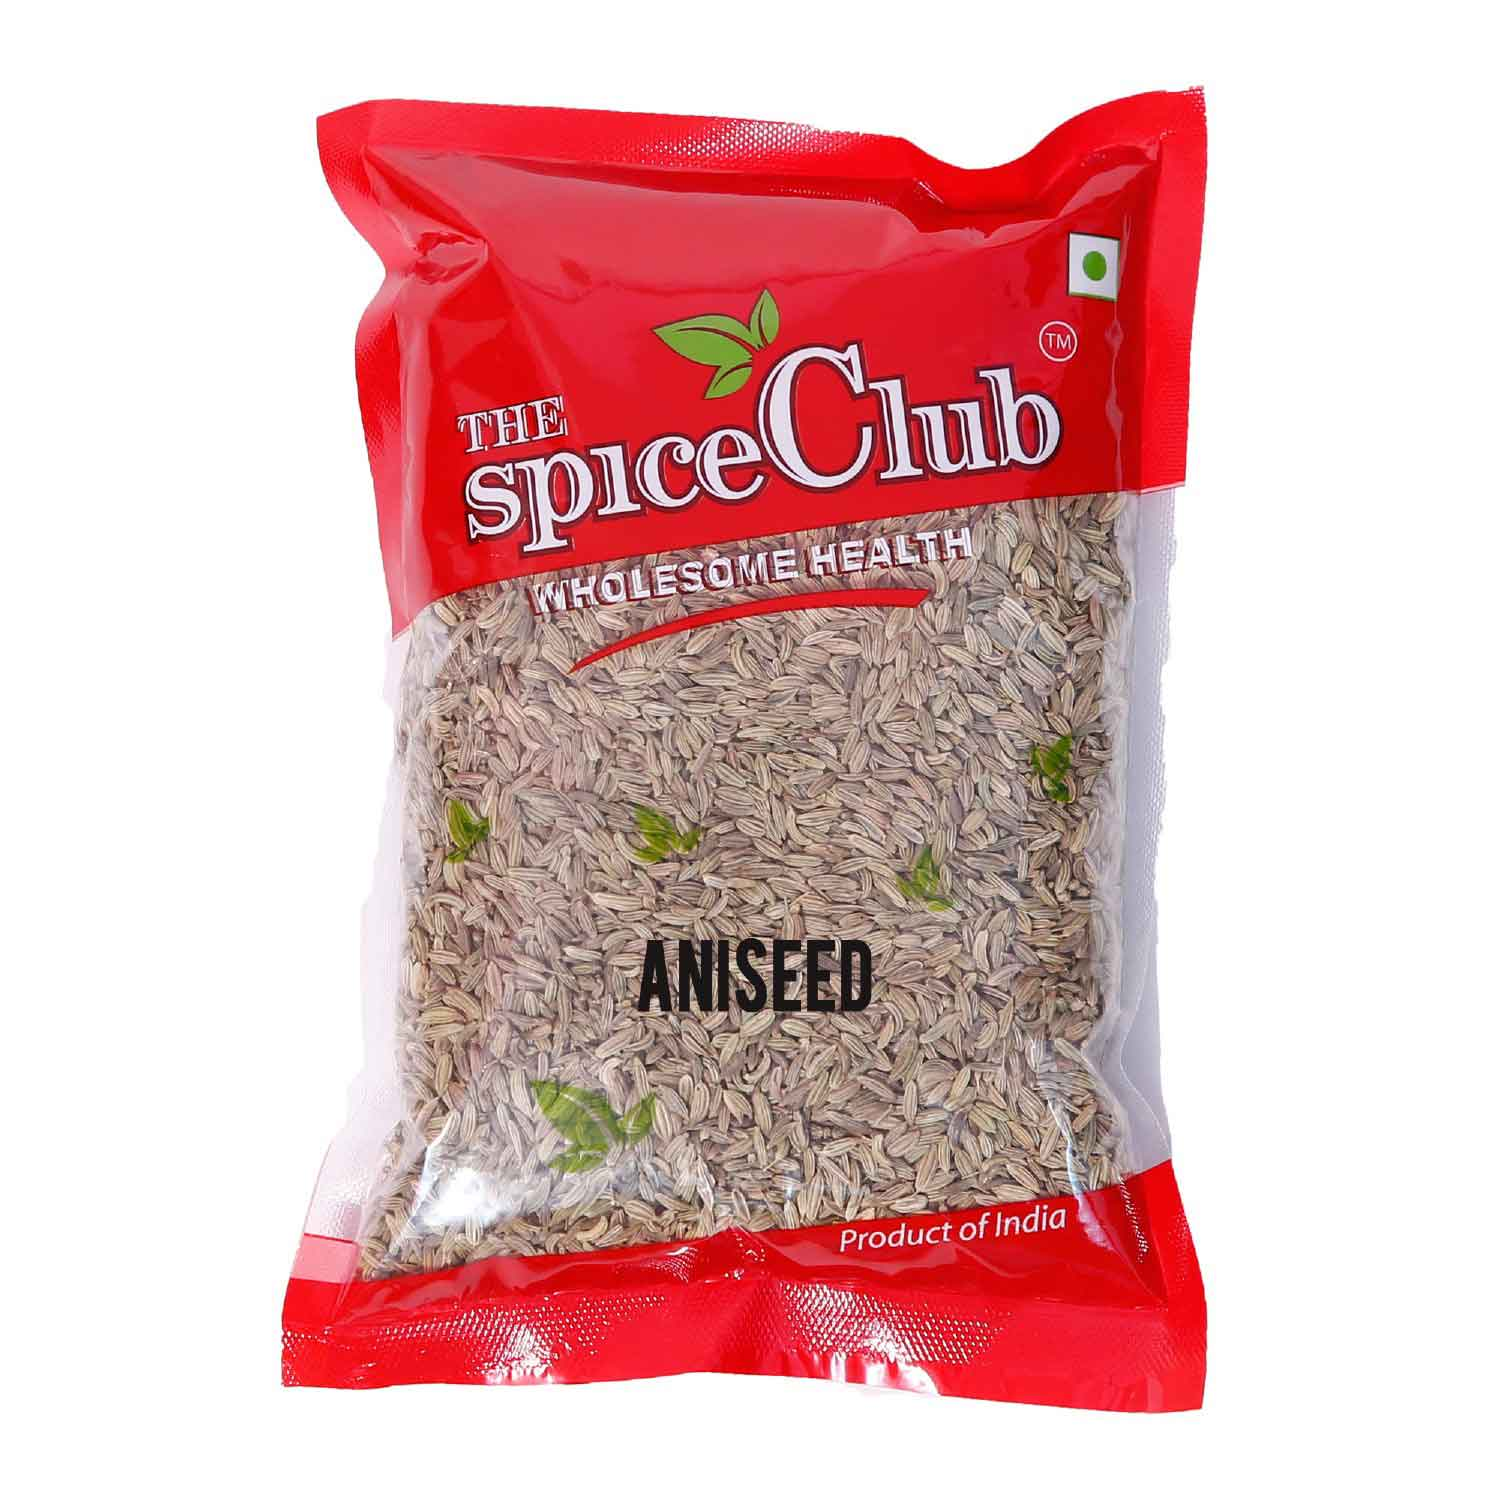 Aniseed (Sombu) - 100% Natural Whole Spice